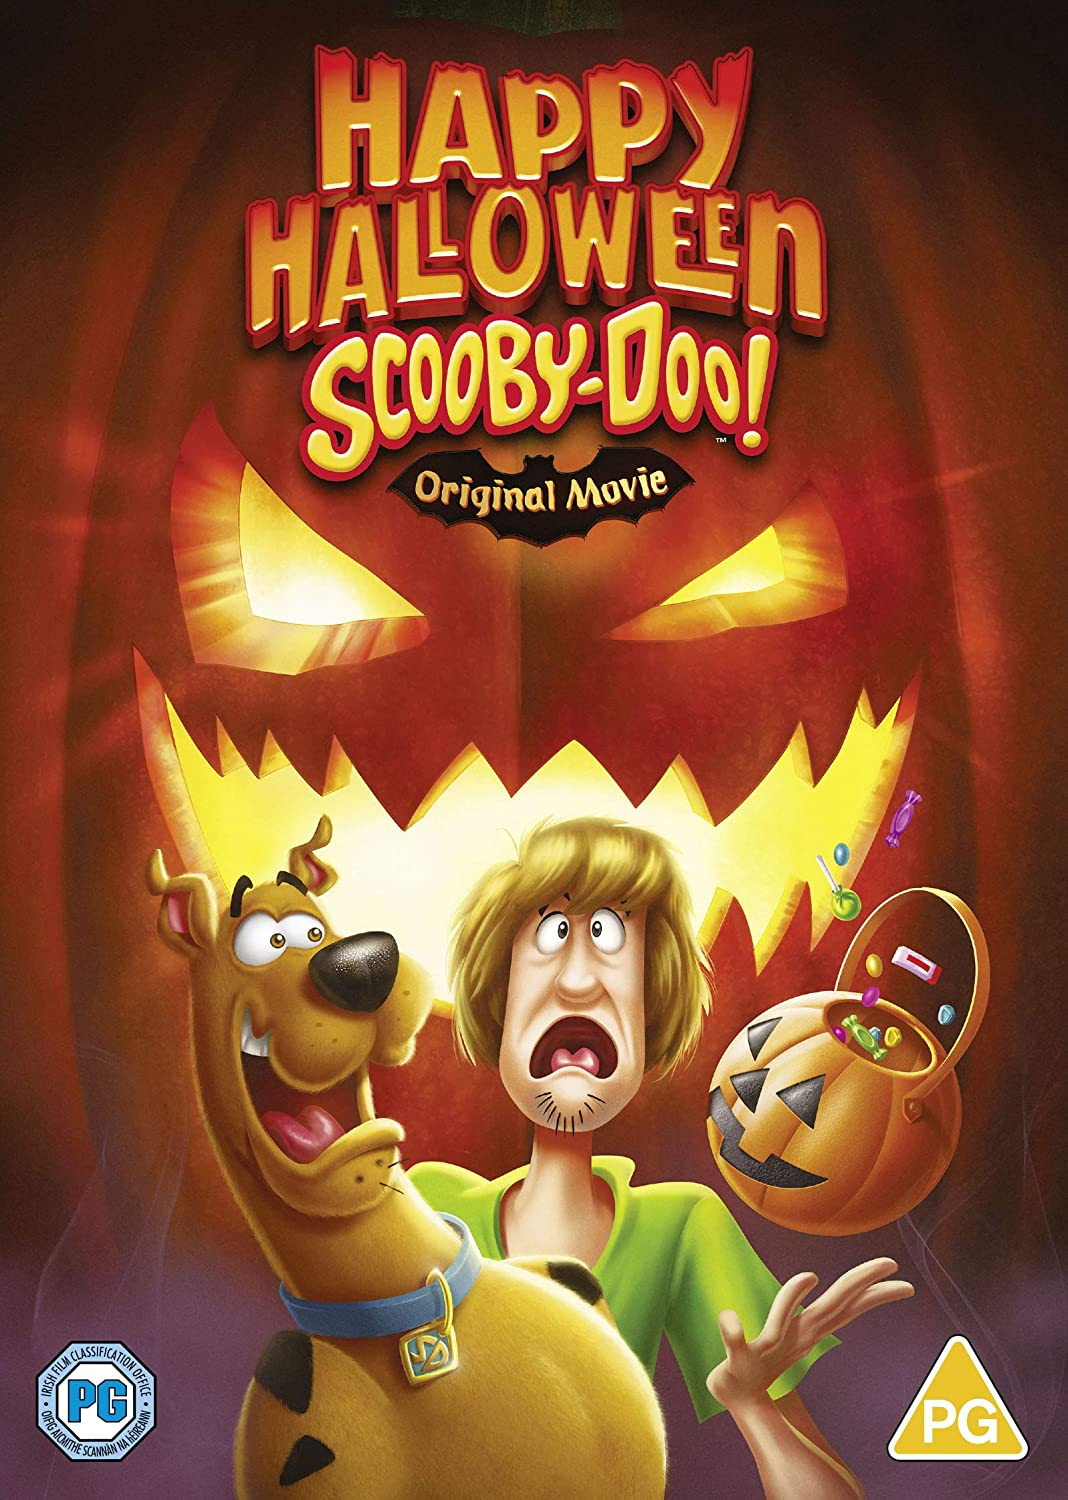 When Is Halloween 2020 Out On Dvd Happy Halloween, Scooby Doo! [DVD] [2020]: Amazon.co.uk: Frank